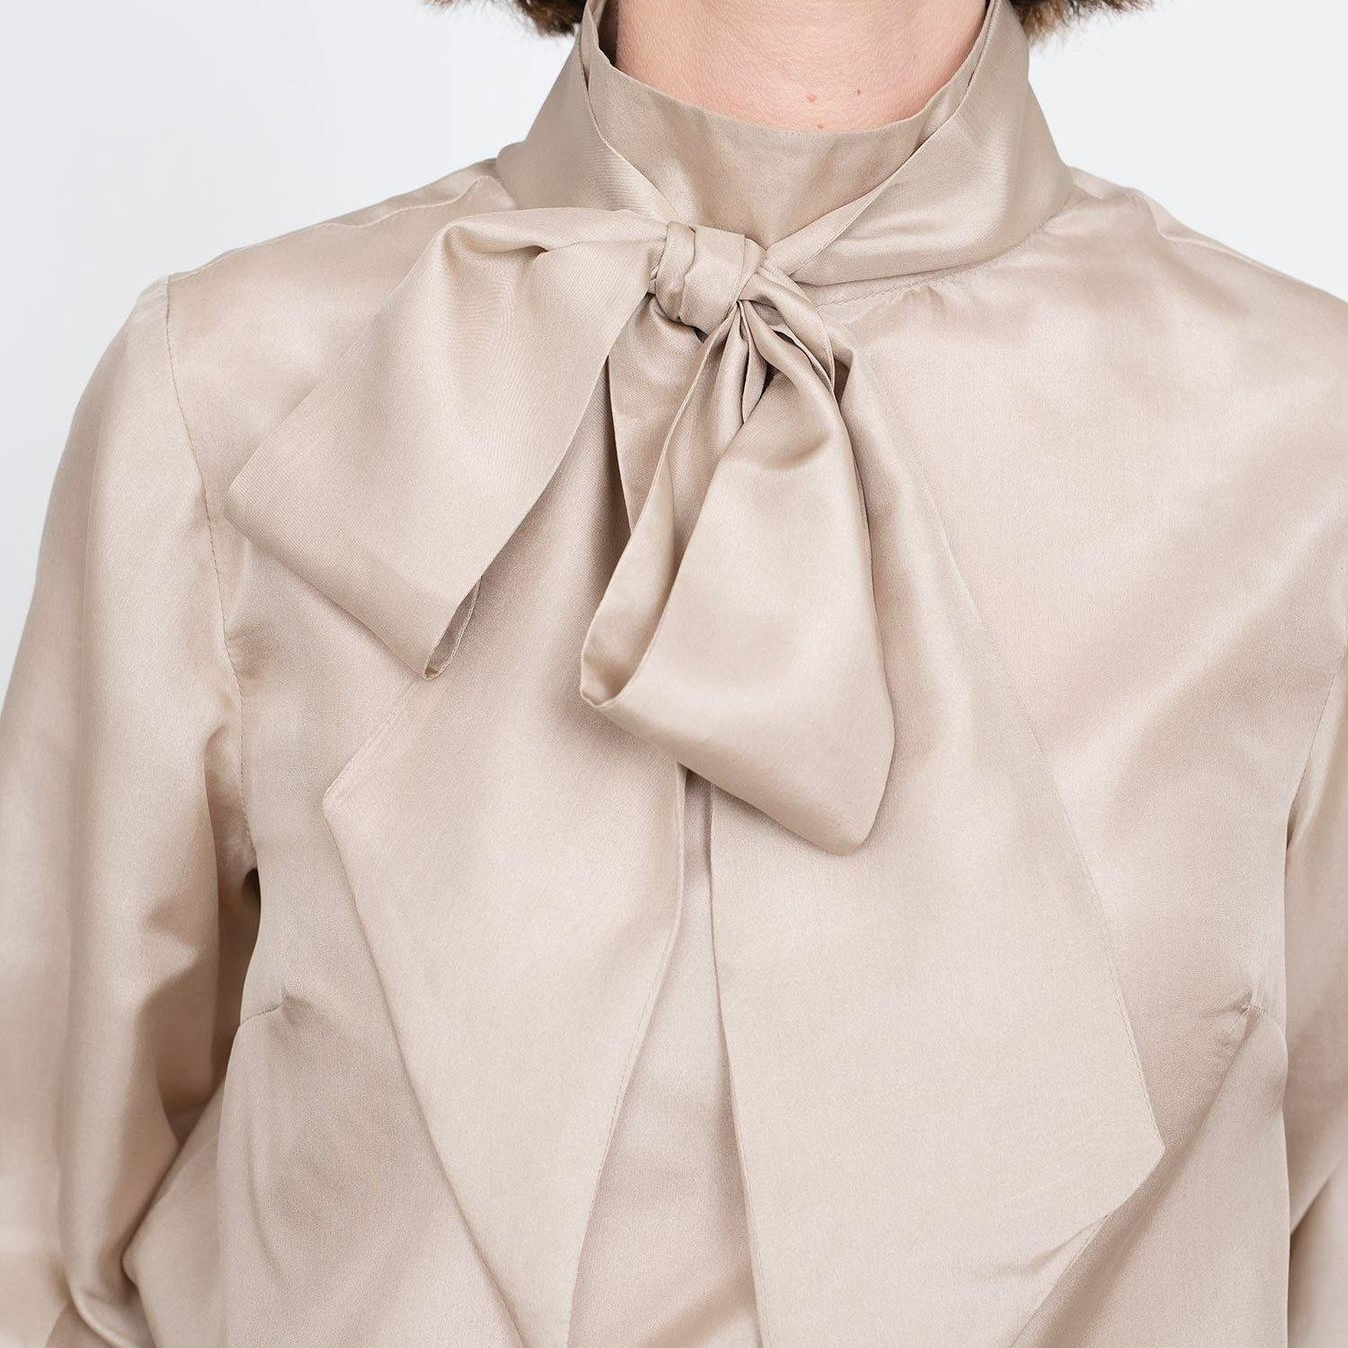 THE TIE BOW BLOUSE The assembly line TAL Stoffdream4you NEAR